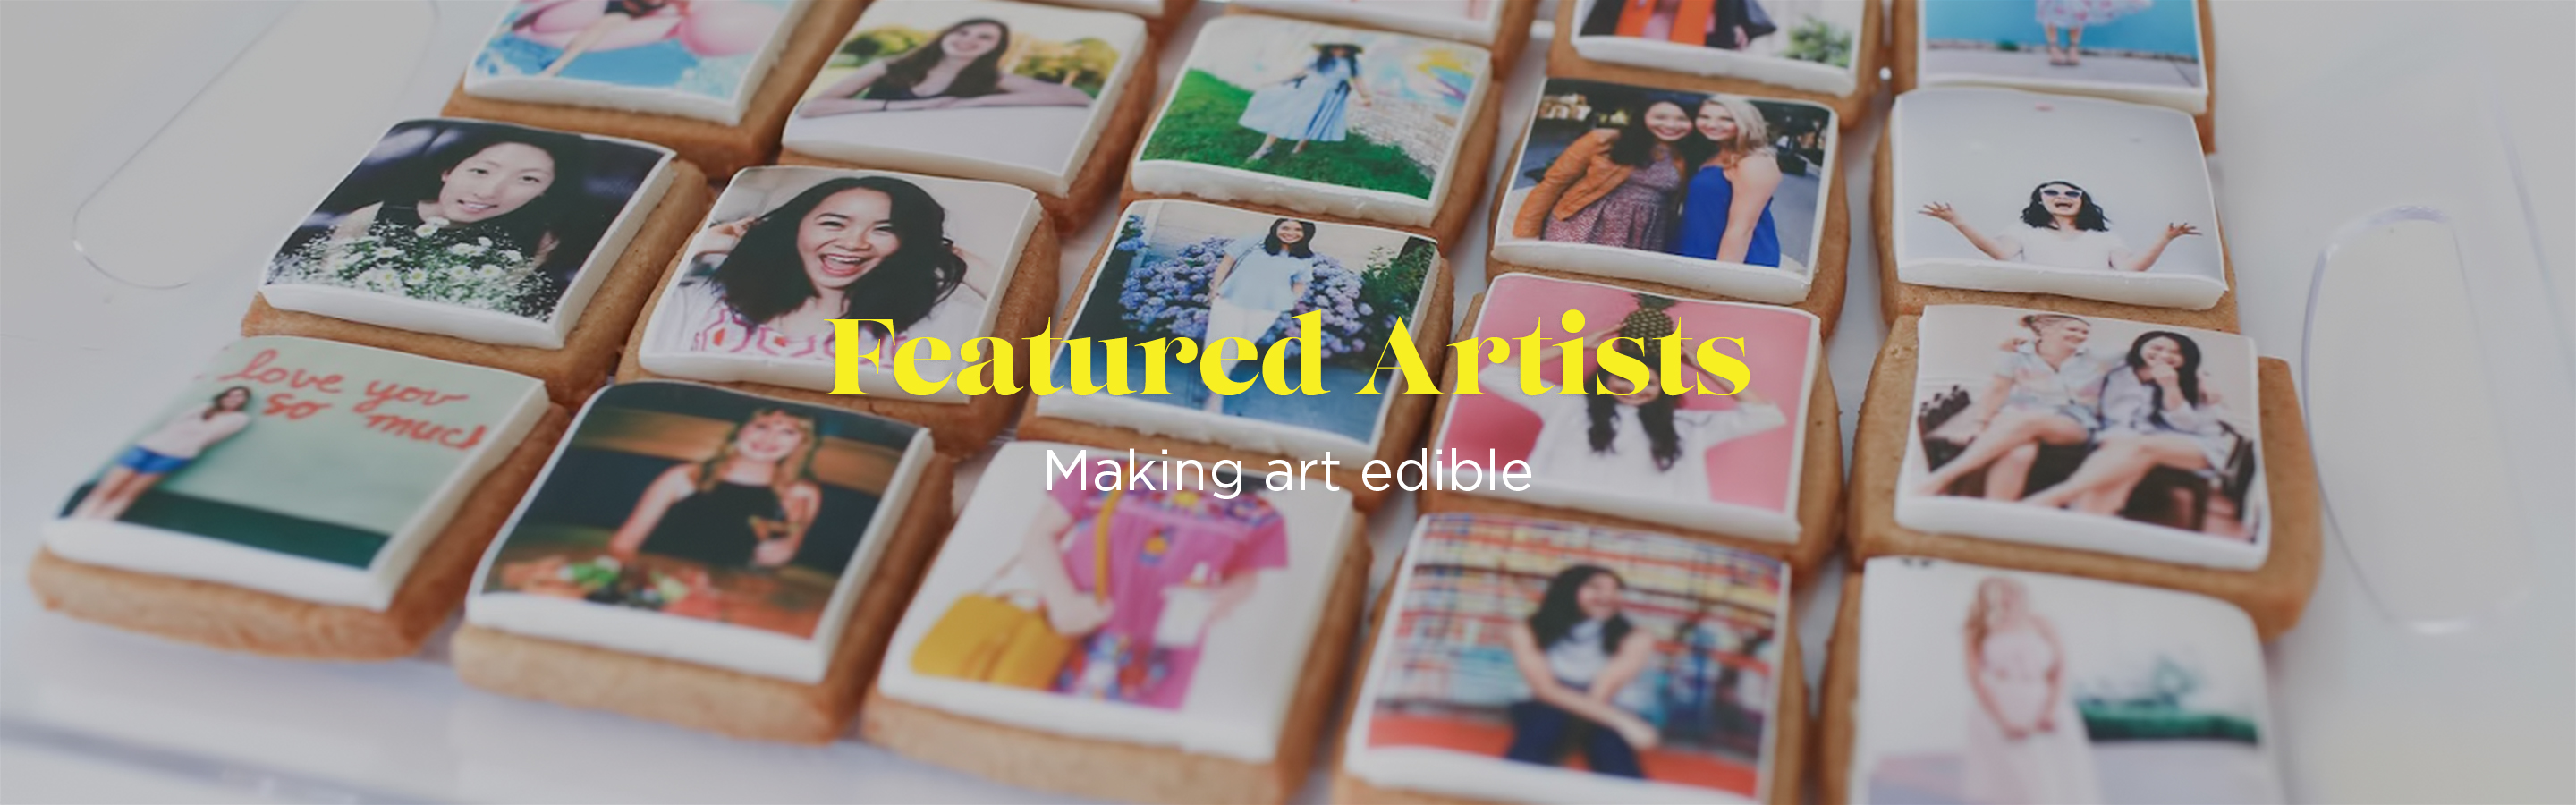 featured-artists-page-banners.jpg